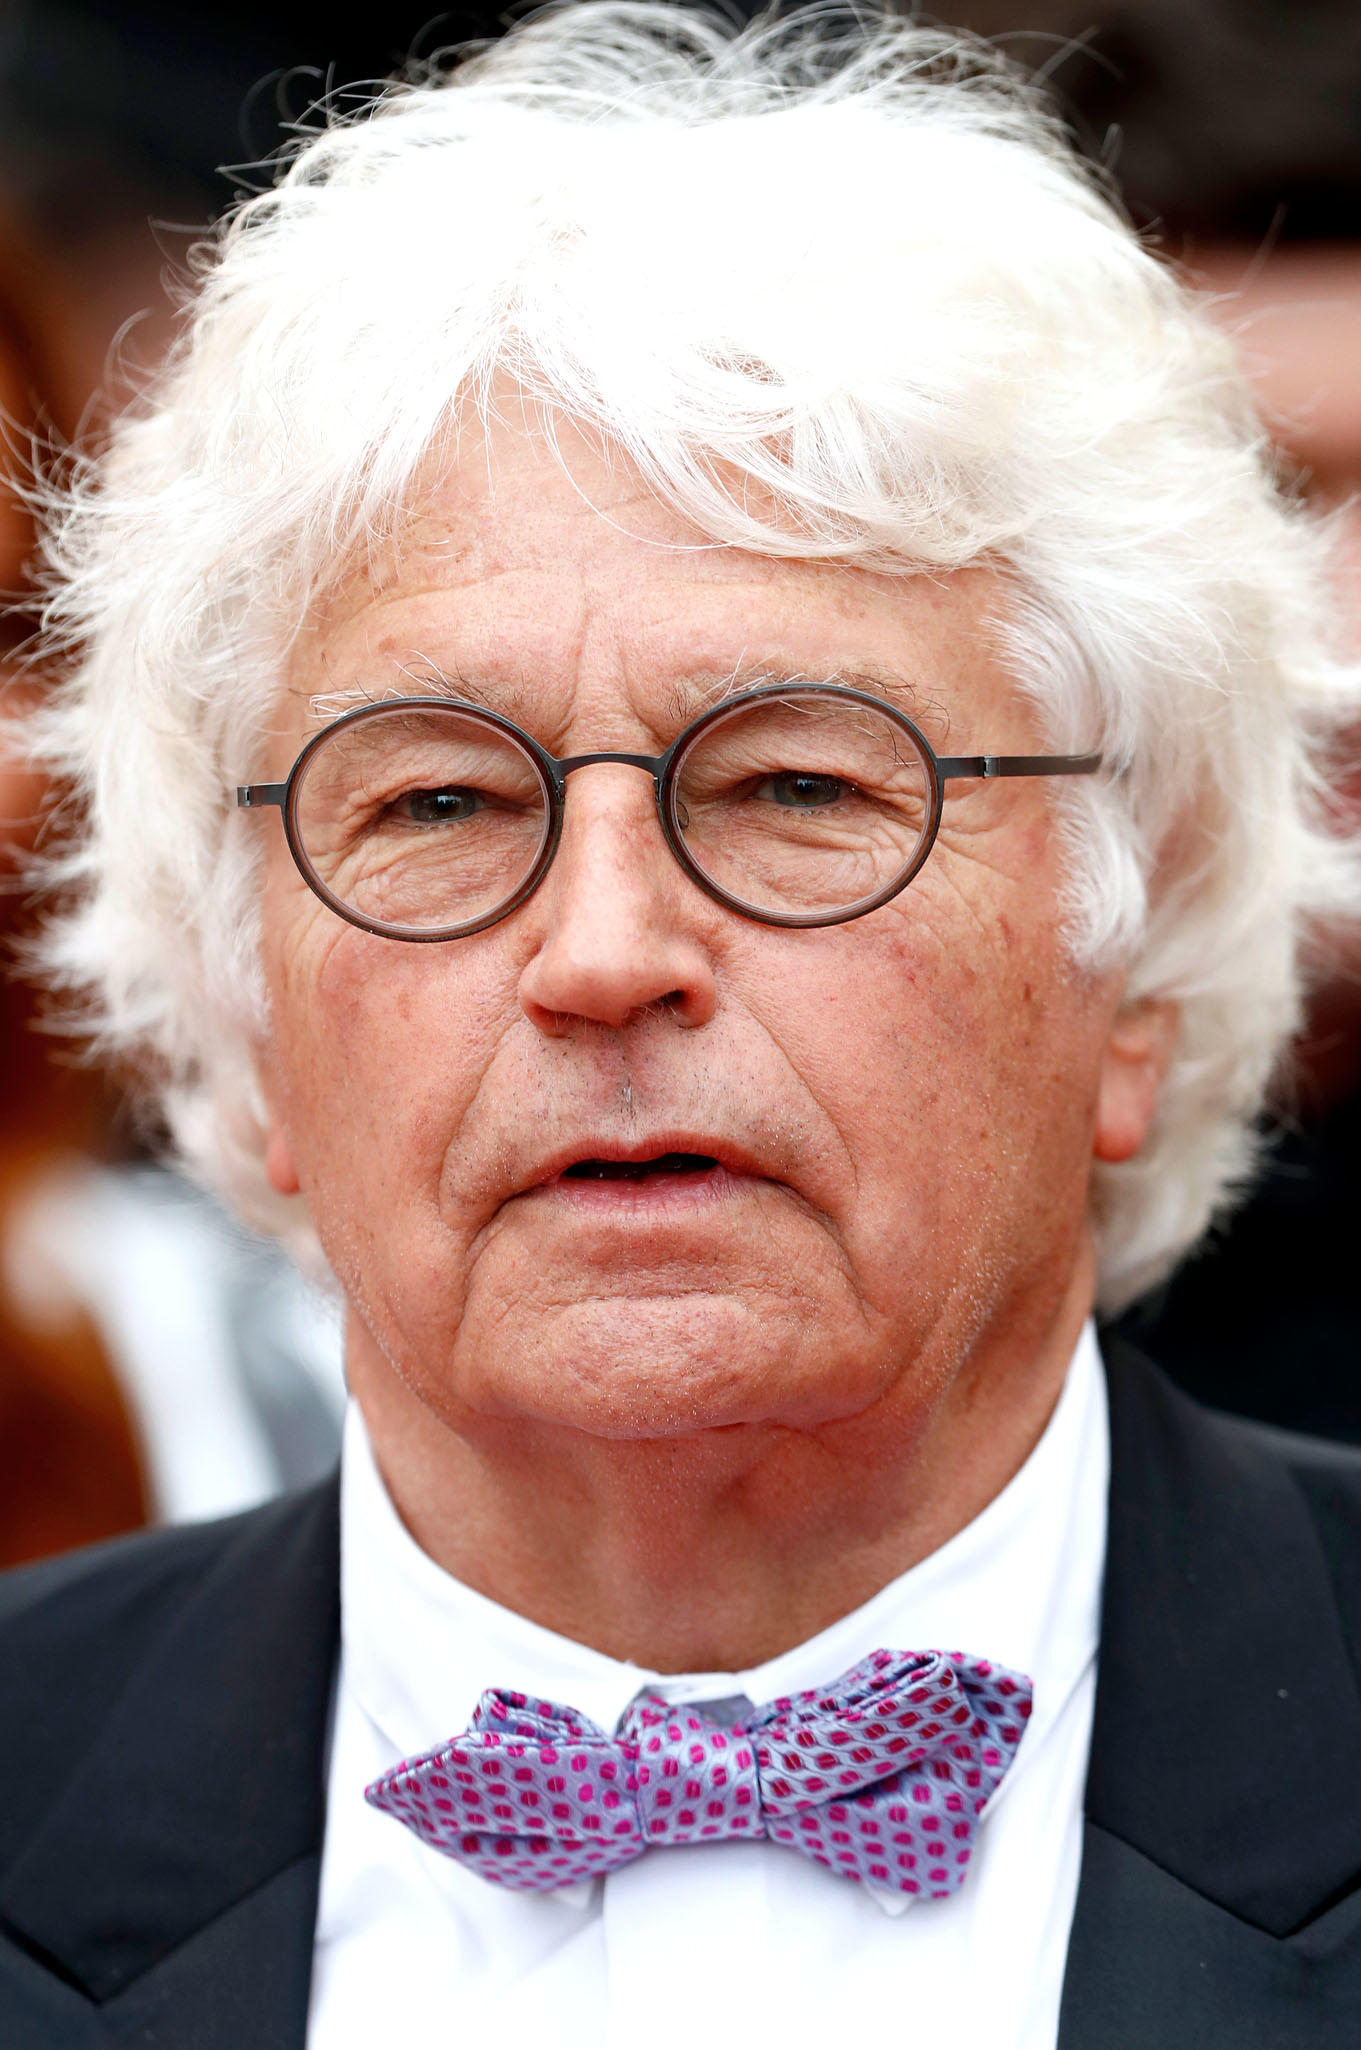 Jean-Jacques Annaud at the screening of